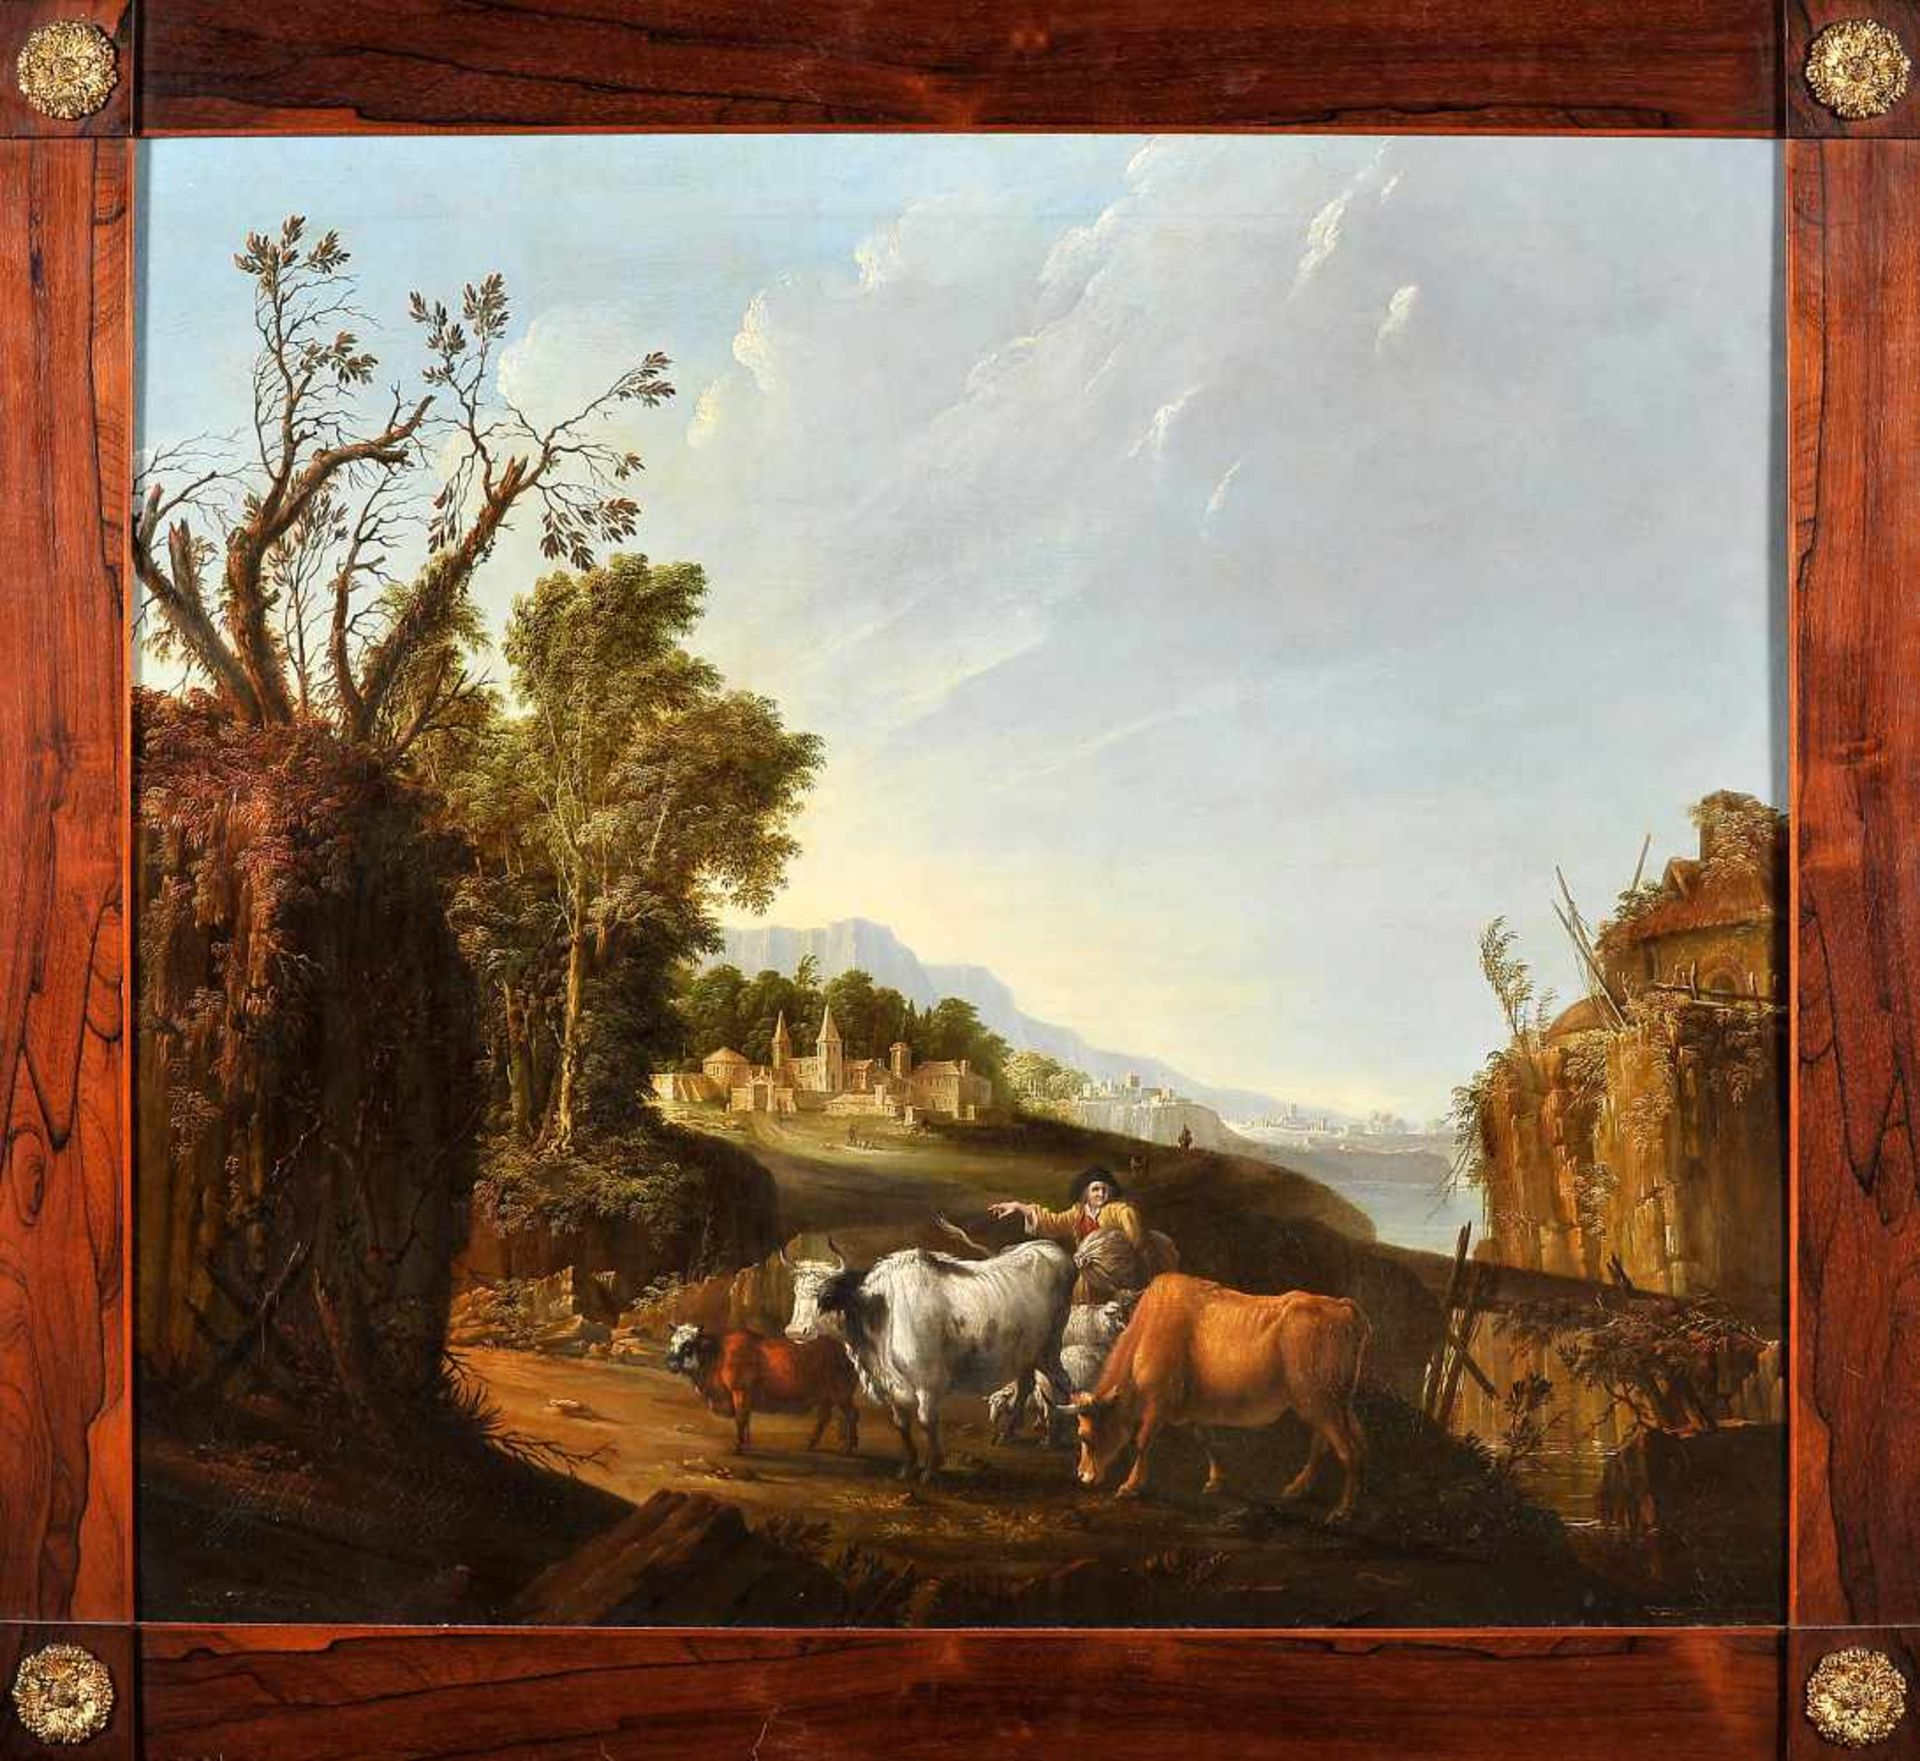 Los 82 - Figures and cattle with city and seaANDRÉ MONTEIRO DA CRUZ - 1770-1851, Figures and cattle with...